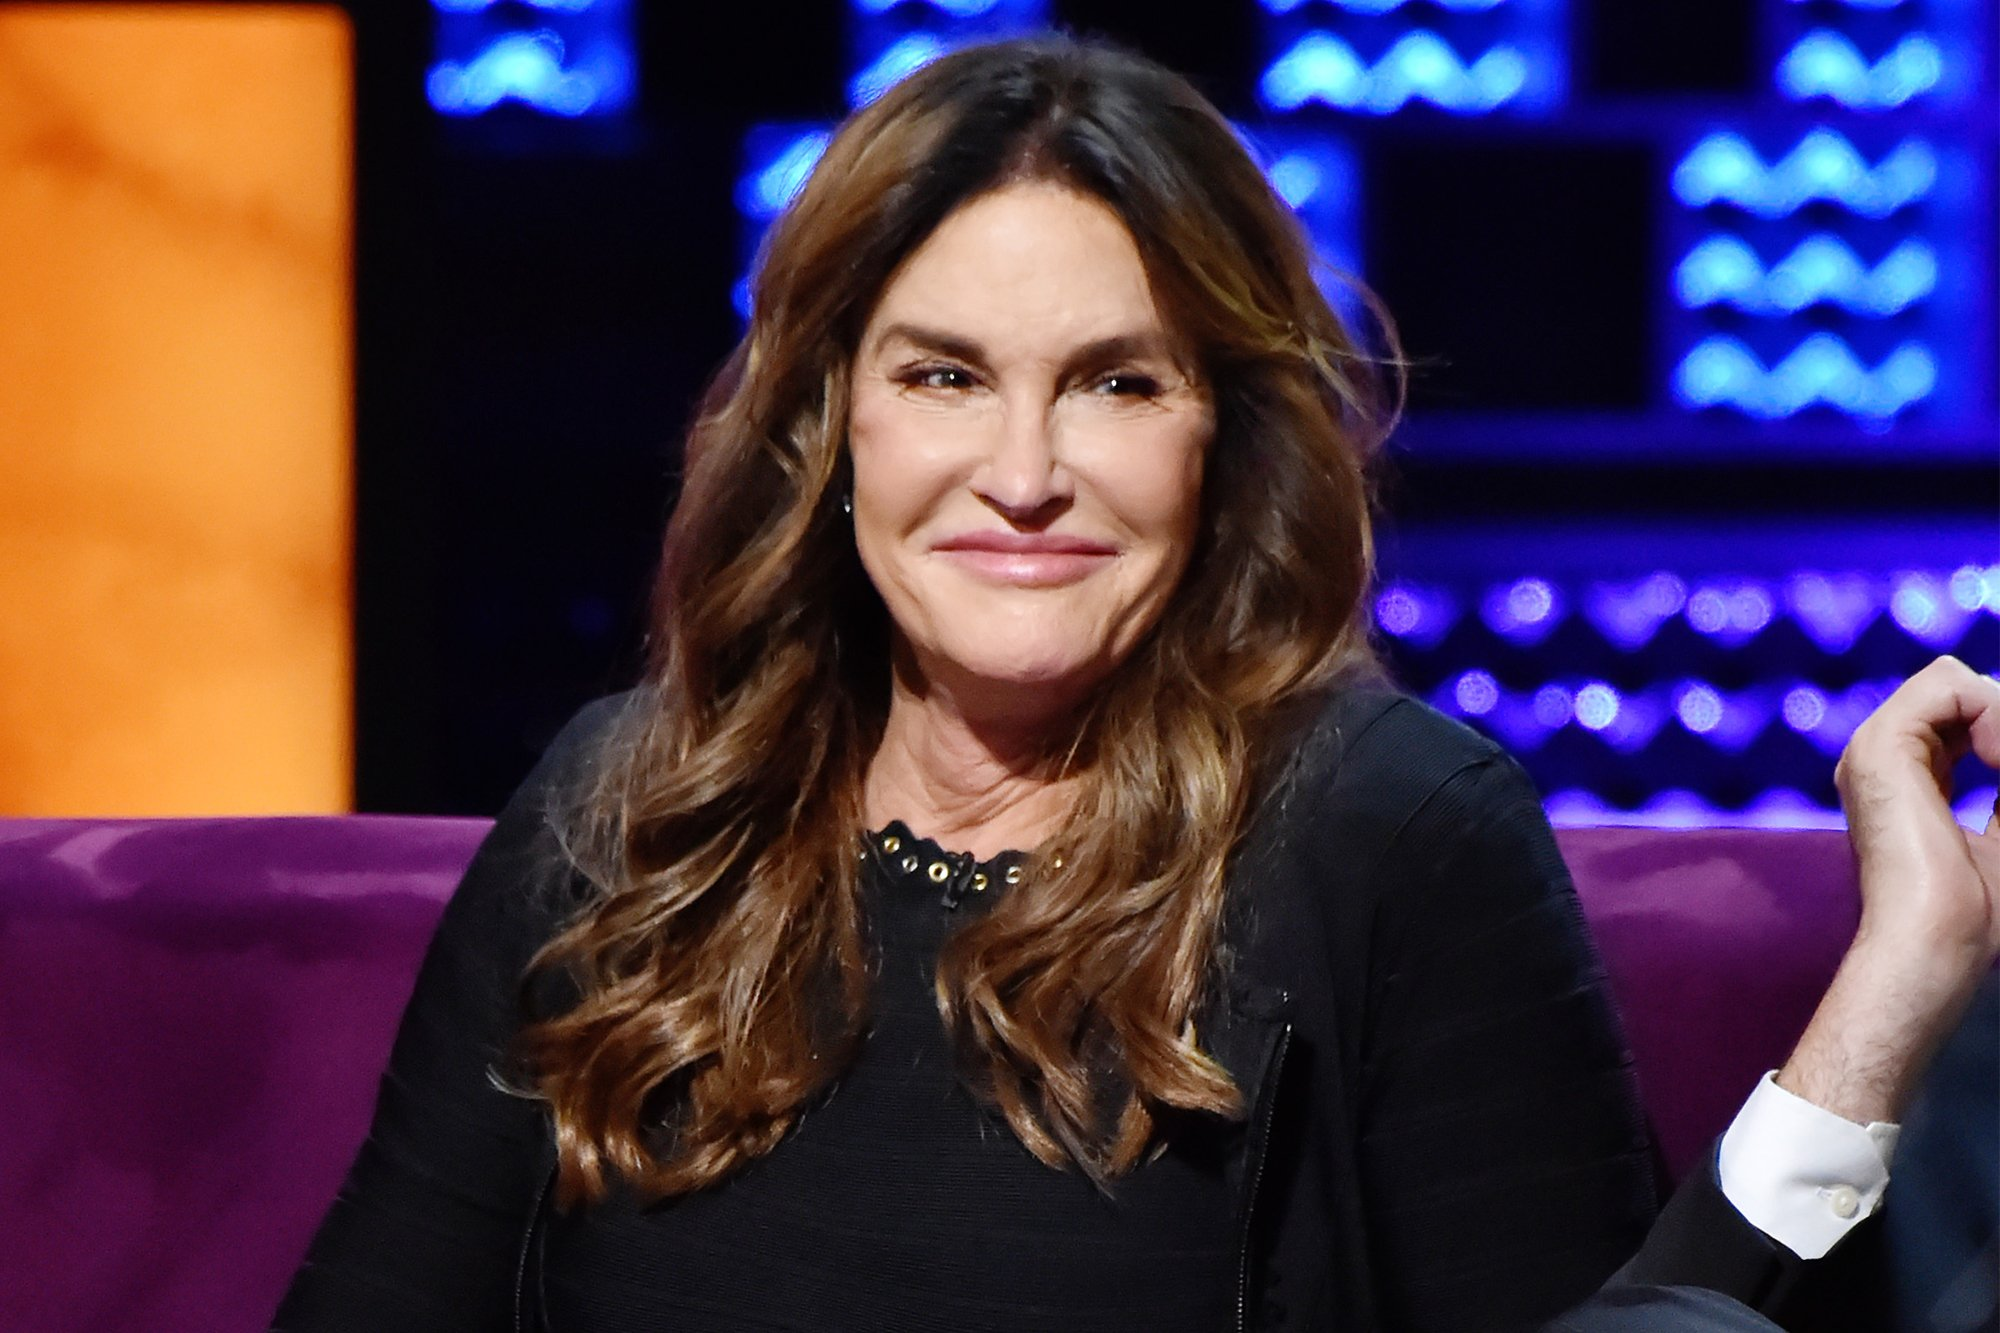 Caitlyn Jenner To Reportedly Appear On The 'Sex And The City' Reboot!